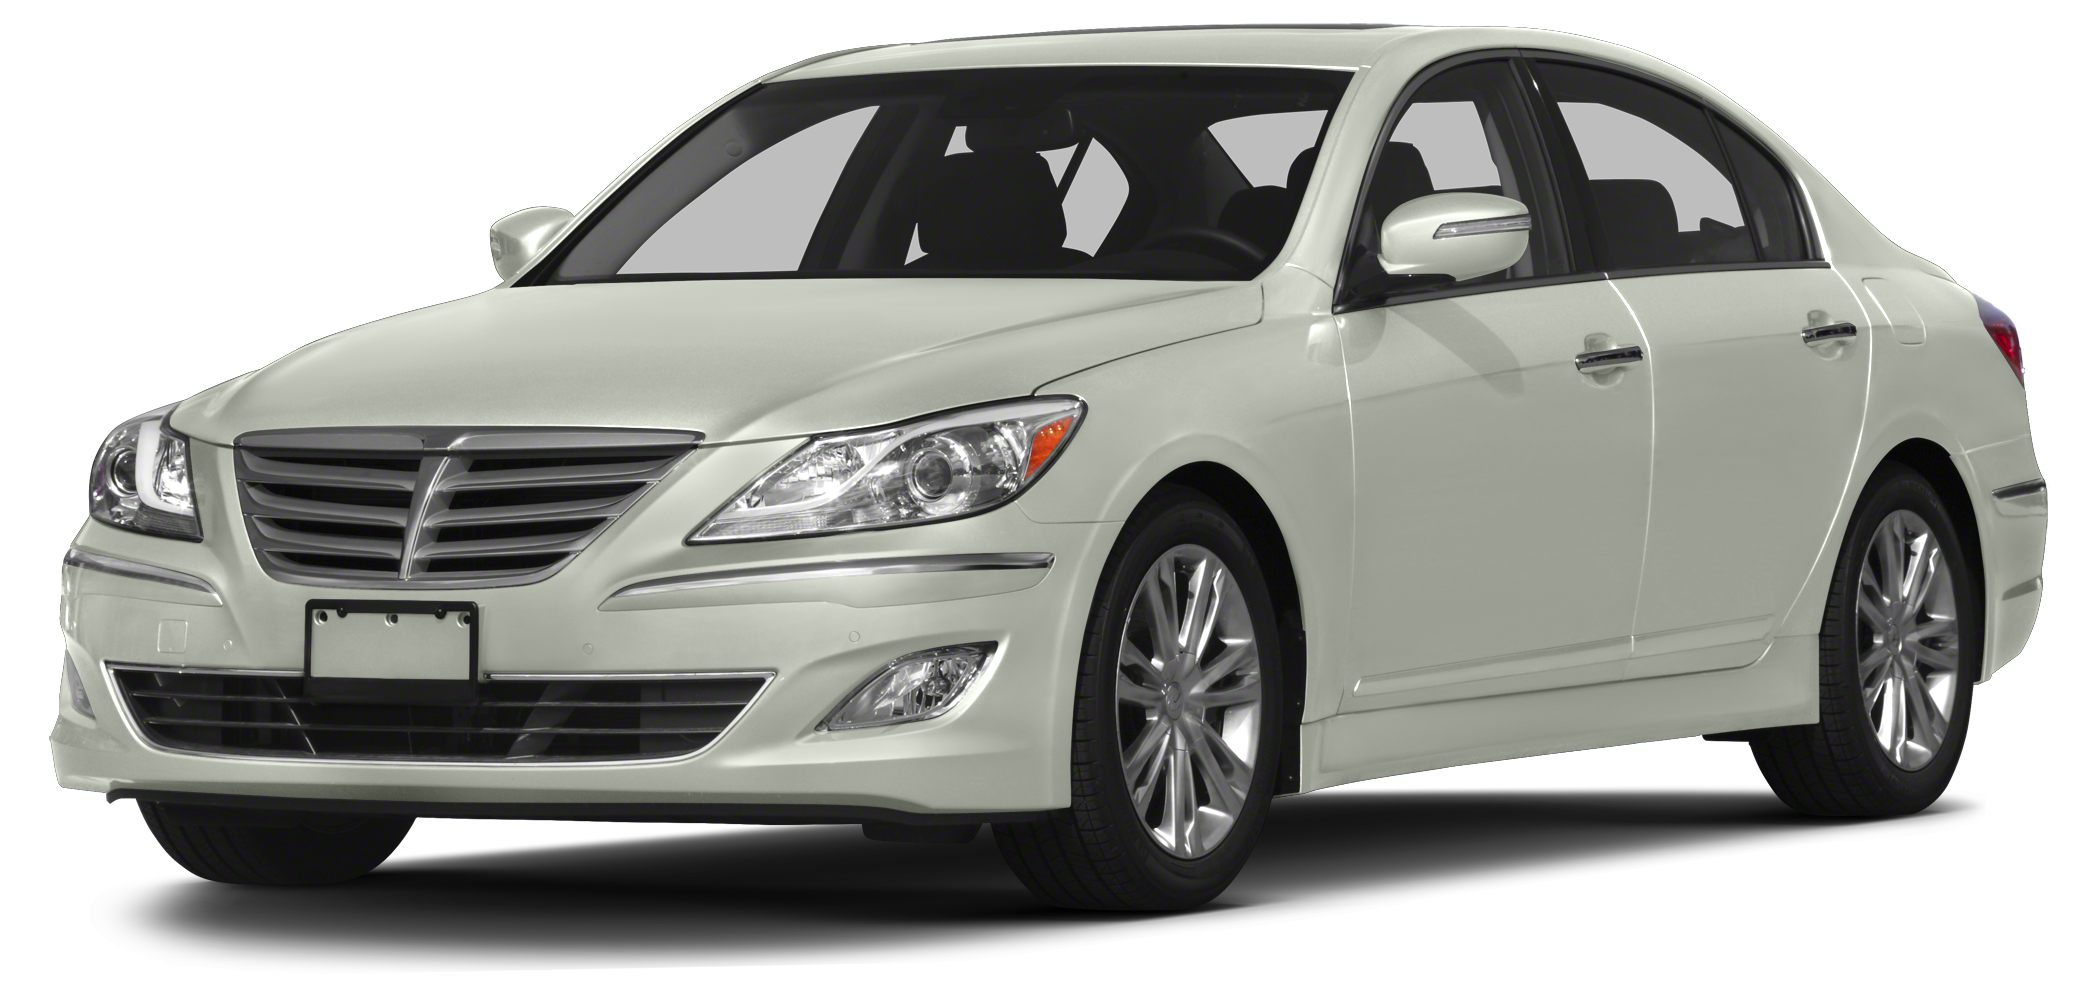 2013 Hyundai Genesis 38 Hyundai Certified Come to First Hyundai What a price for a 13 Your que